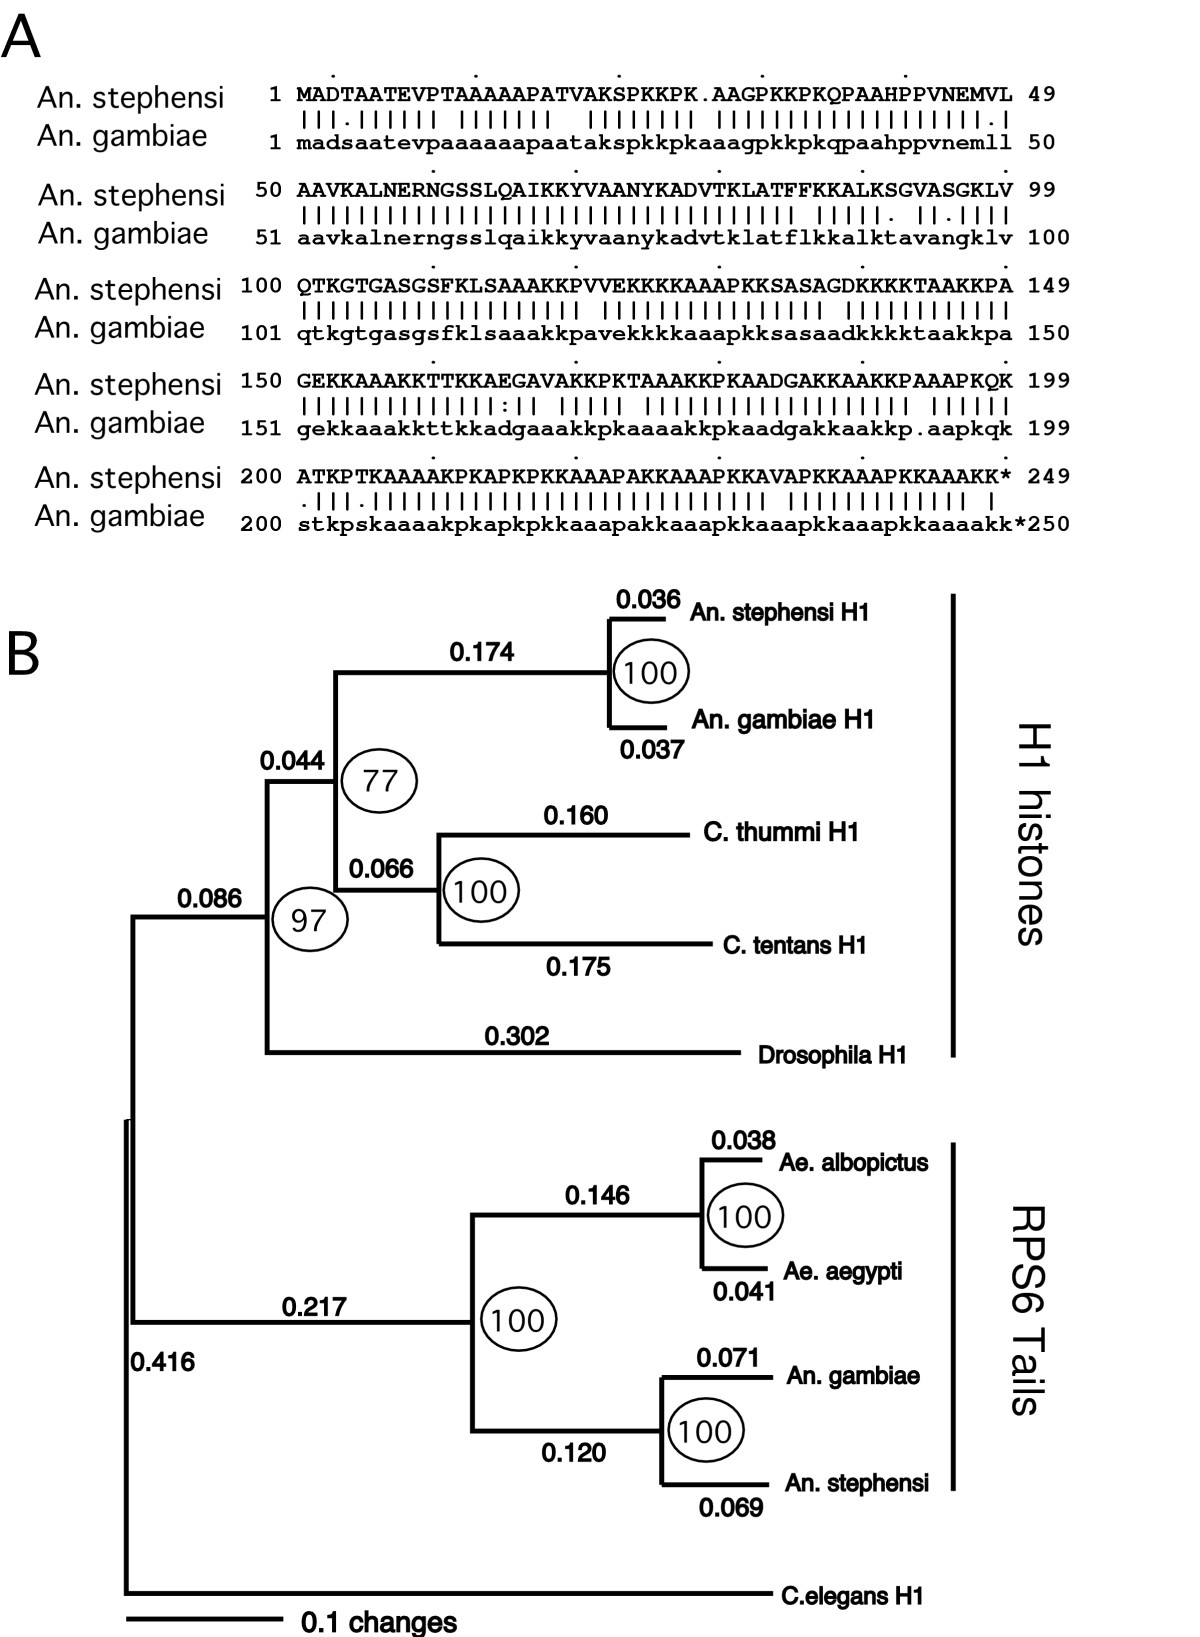 https://static-content.springer.com/image/art%3A10.1186%2F1471-2164-6-8/MediaObjects/12864_2004_Article_209_Fig4_HTML.jpg